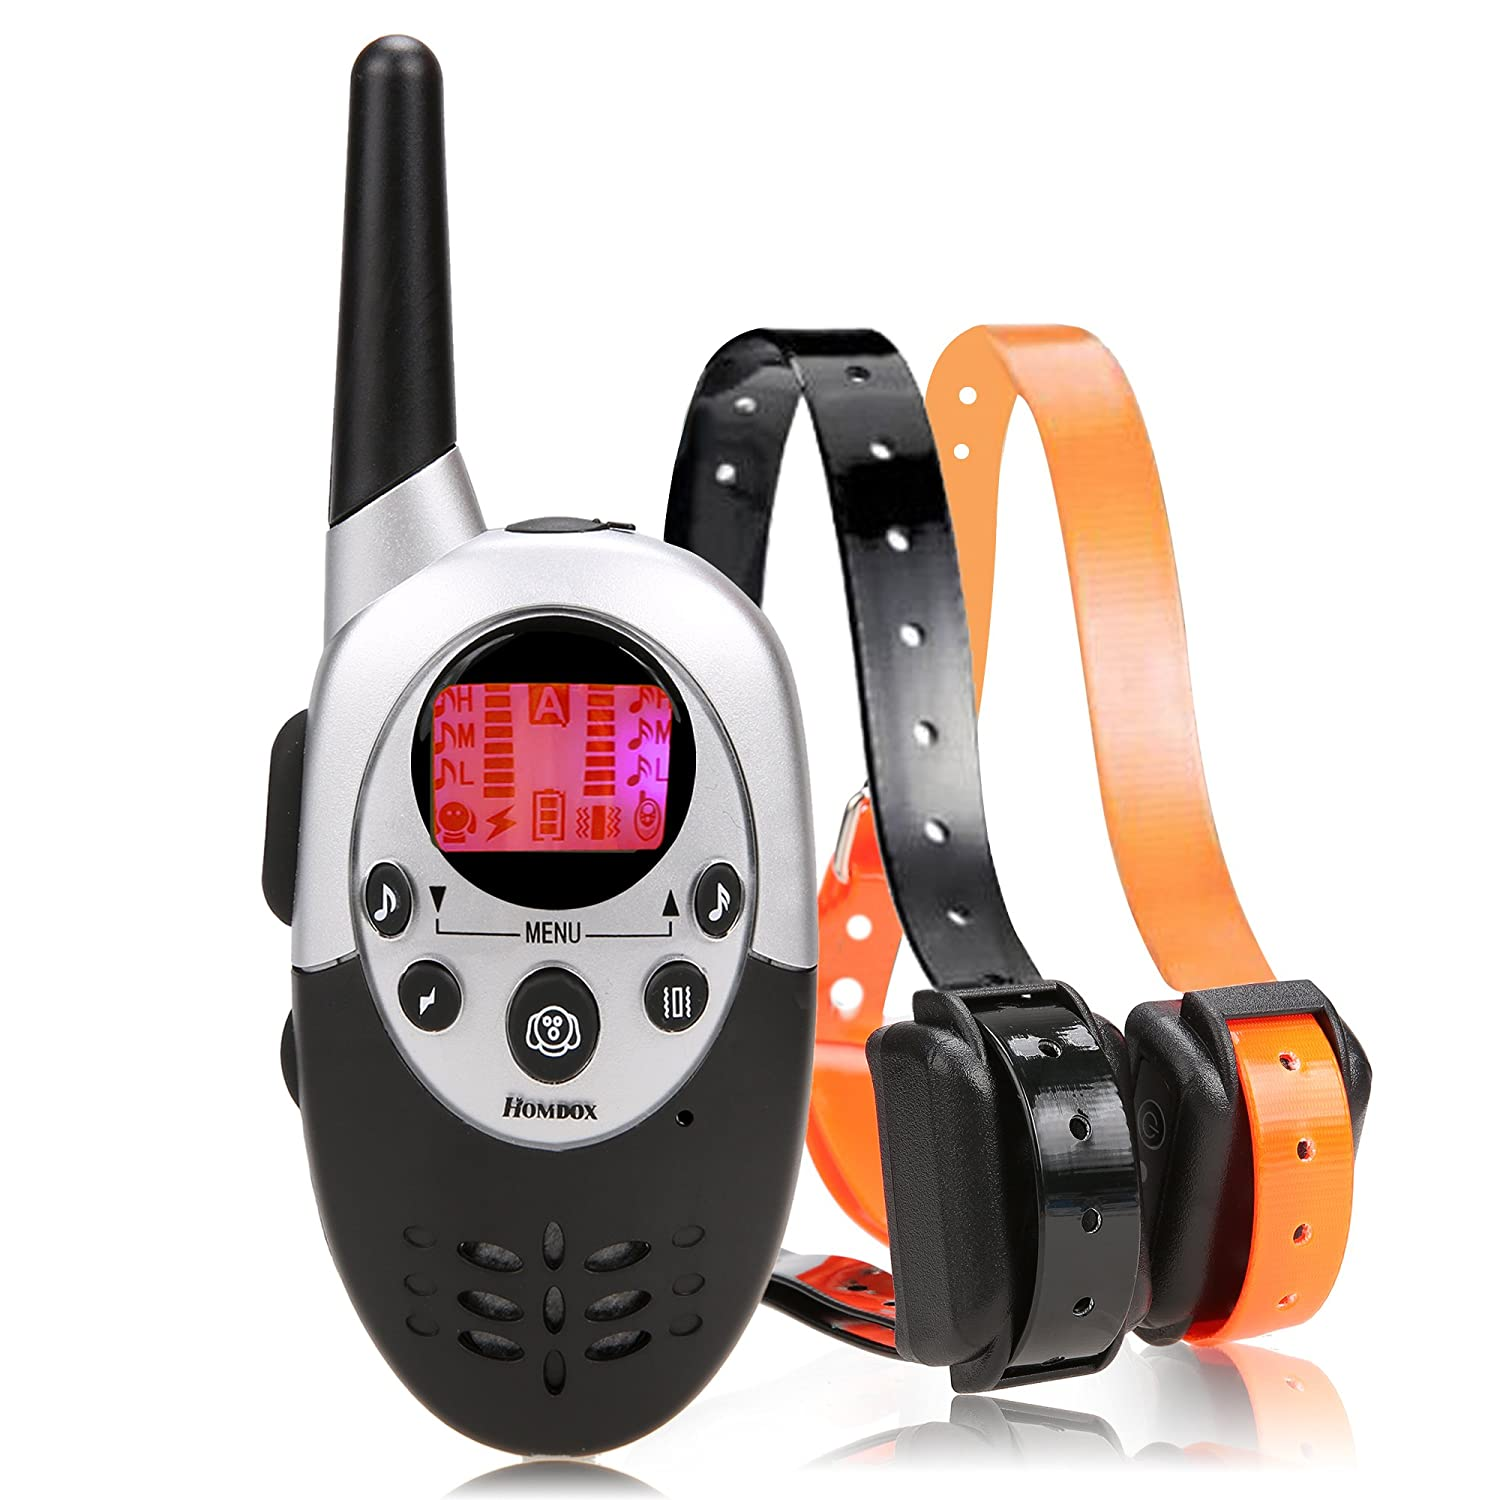 Homdox Water Proof Rechargeable Adjustable Pet Training Collars Water Resistant Dog Training Collar Adjustable E Collar with Wireless Remote, Black *AM003213